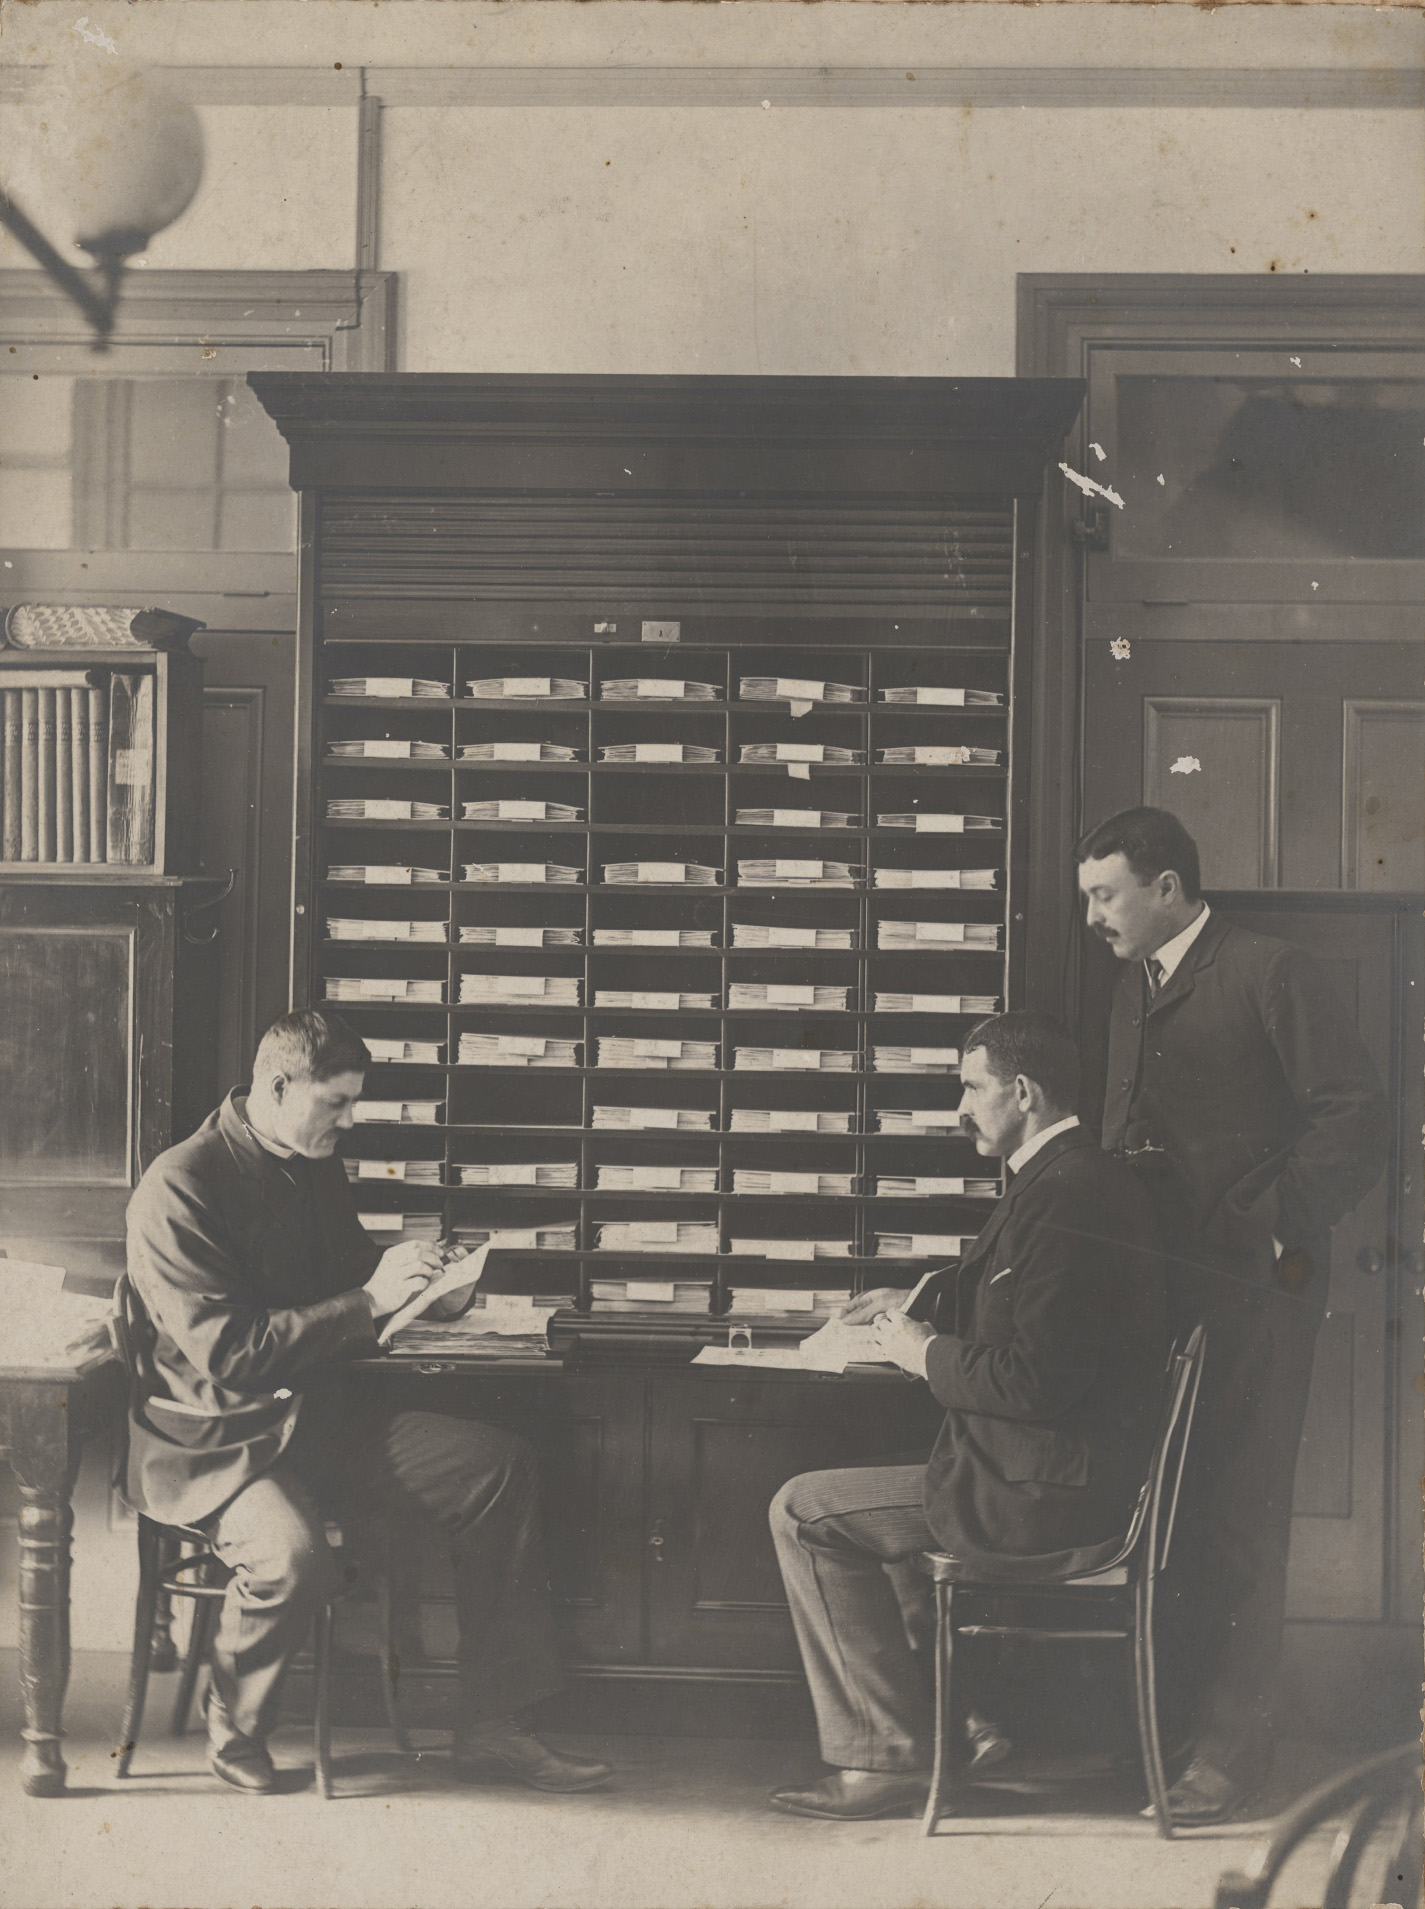 Men in front of tall cabinet of shelving, two seated at table, one standing.